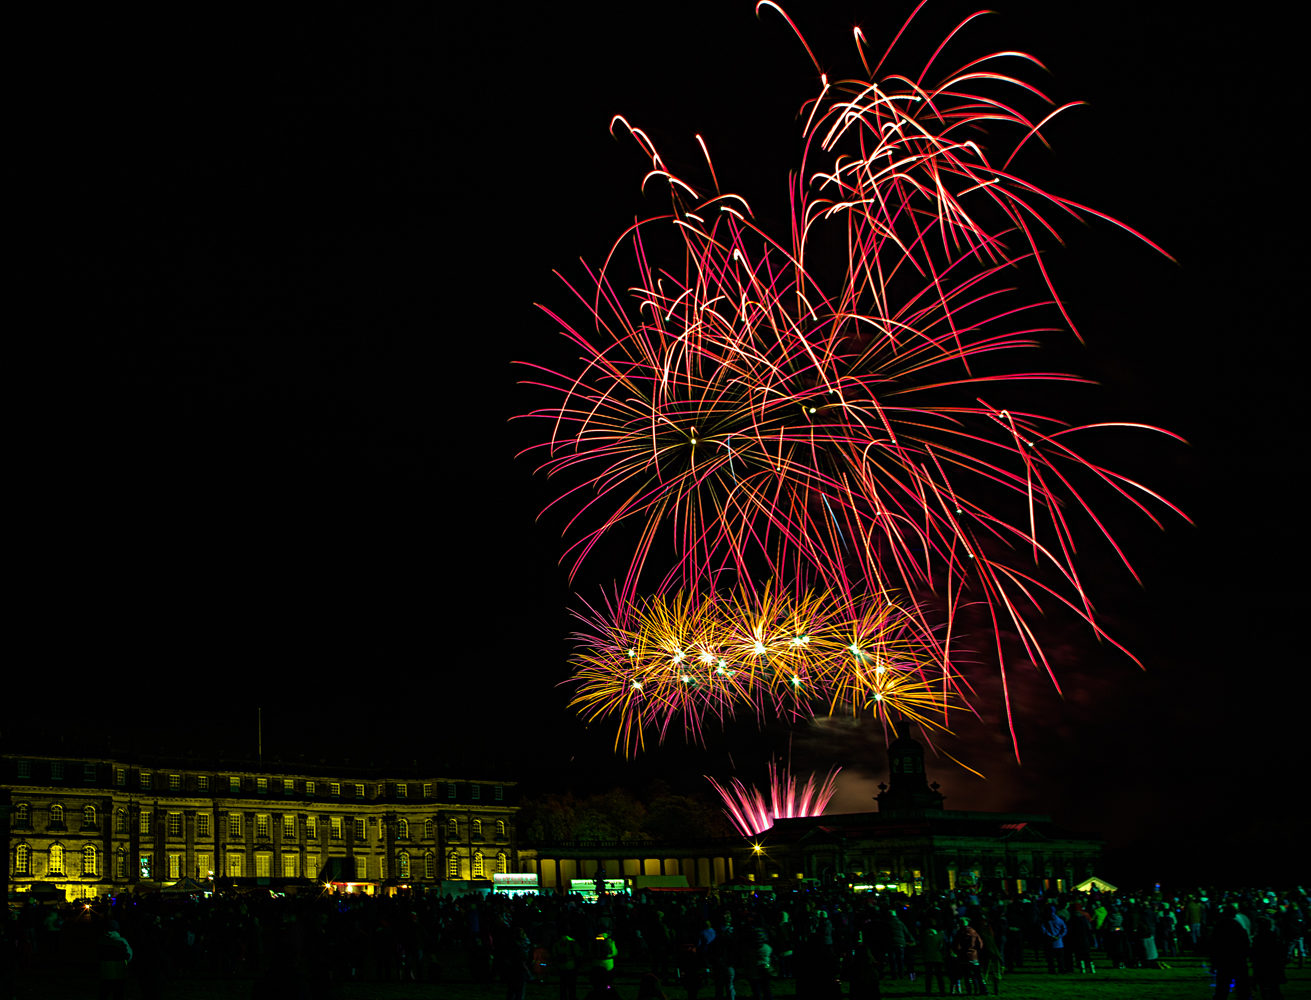 21cc Fireworks Local Authority and Public Events Fireworks